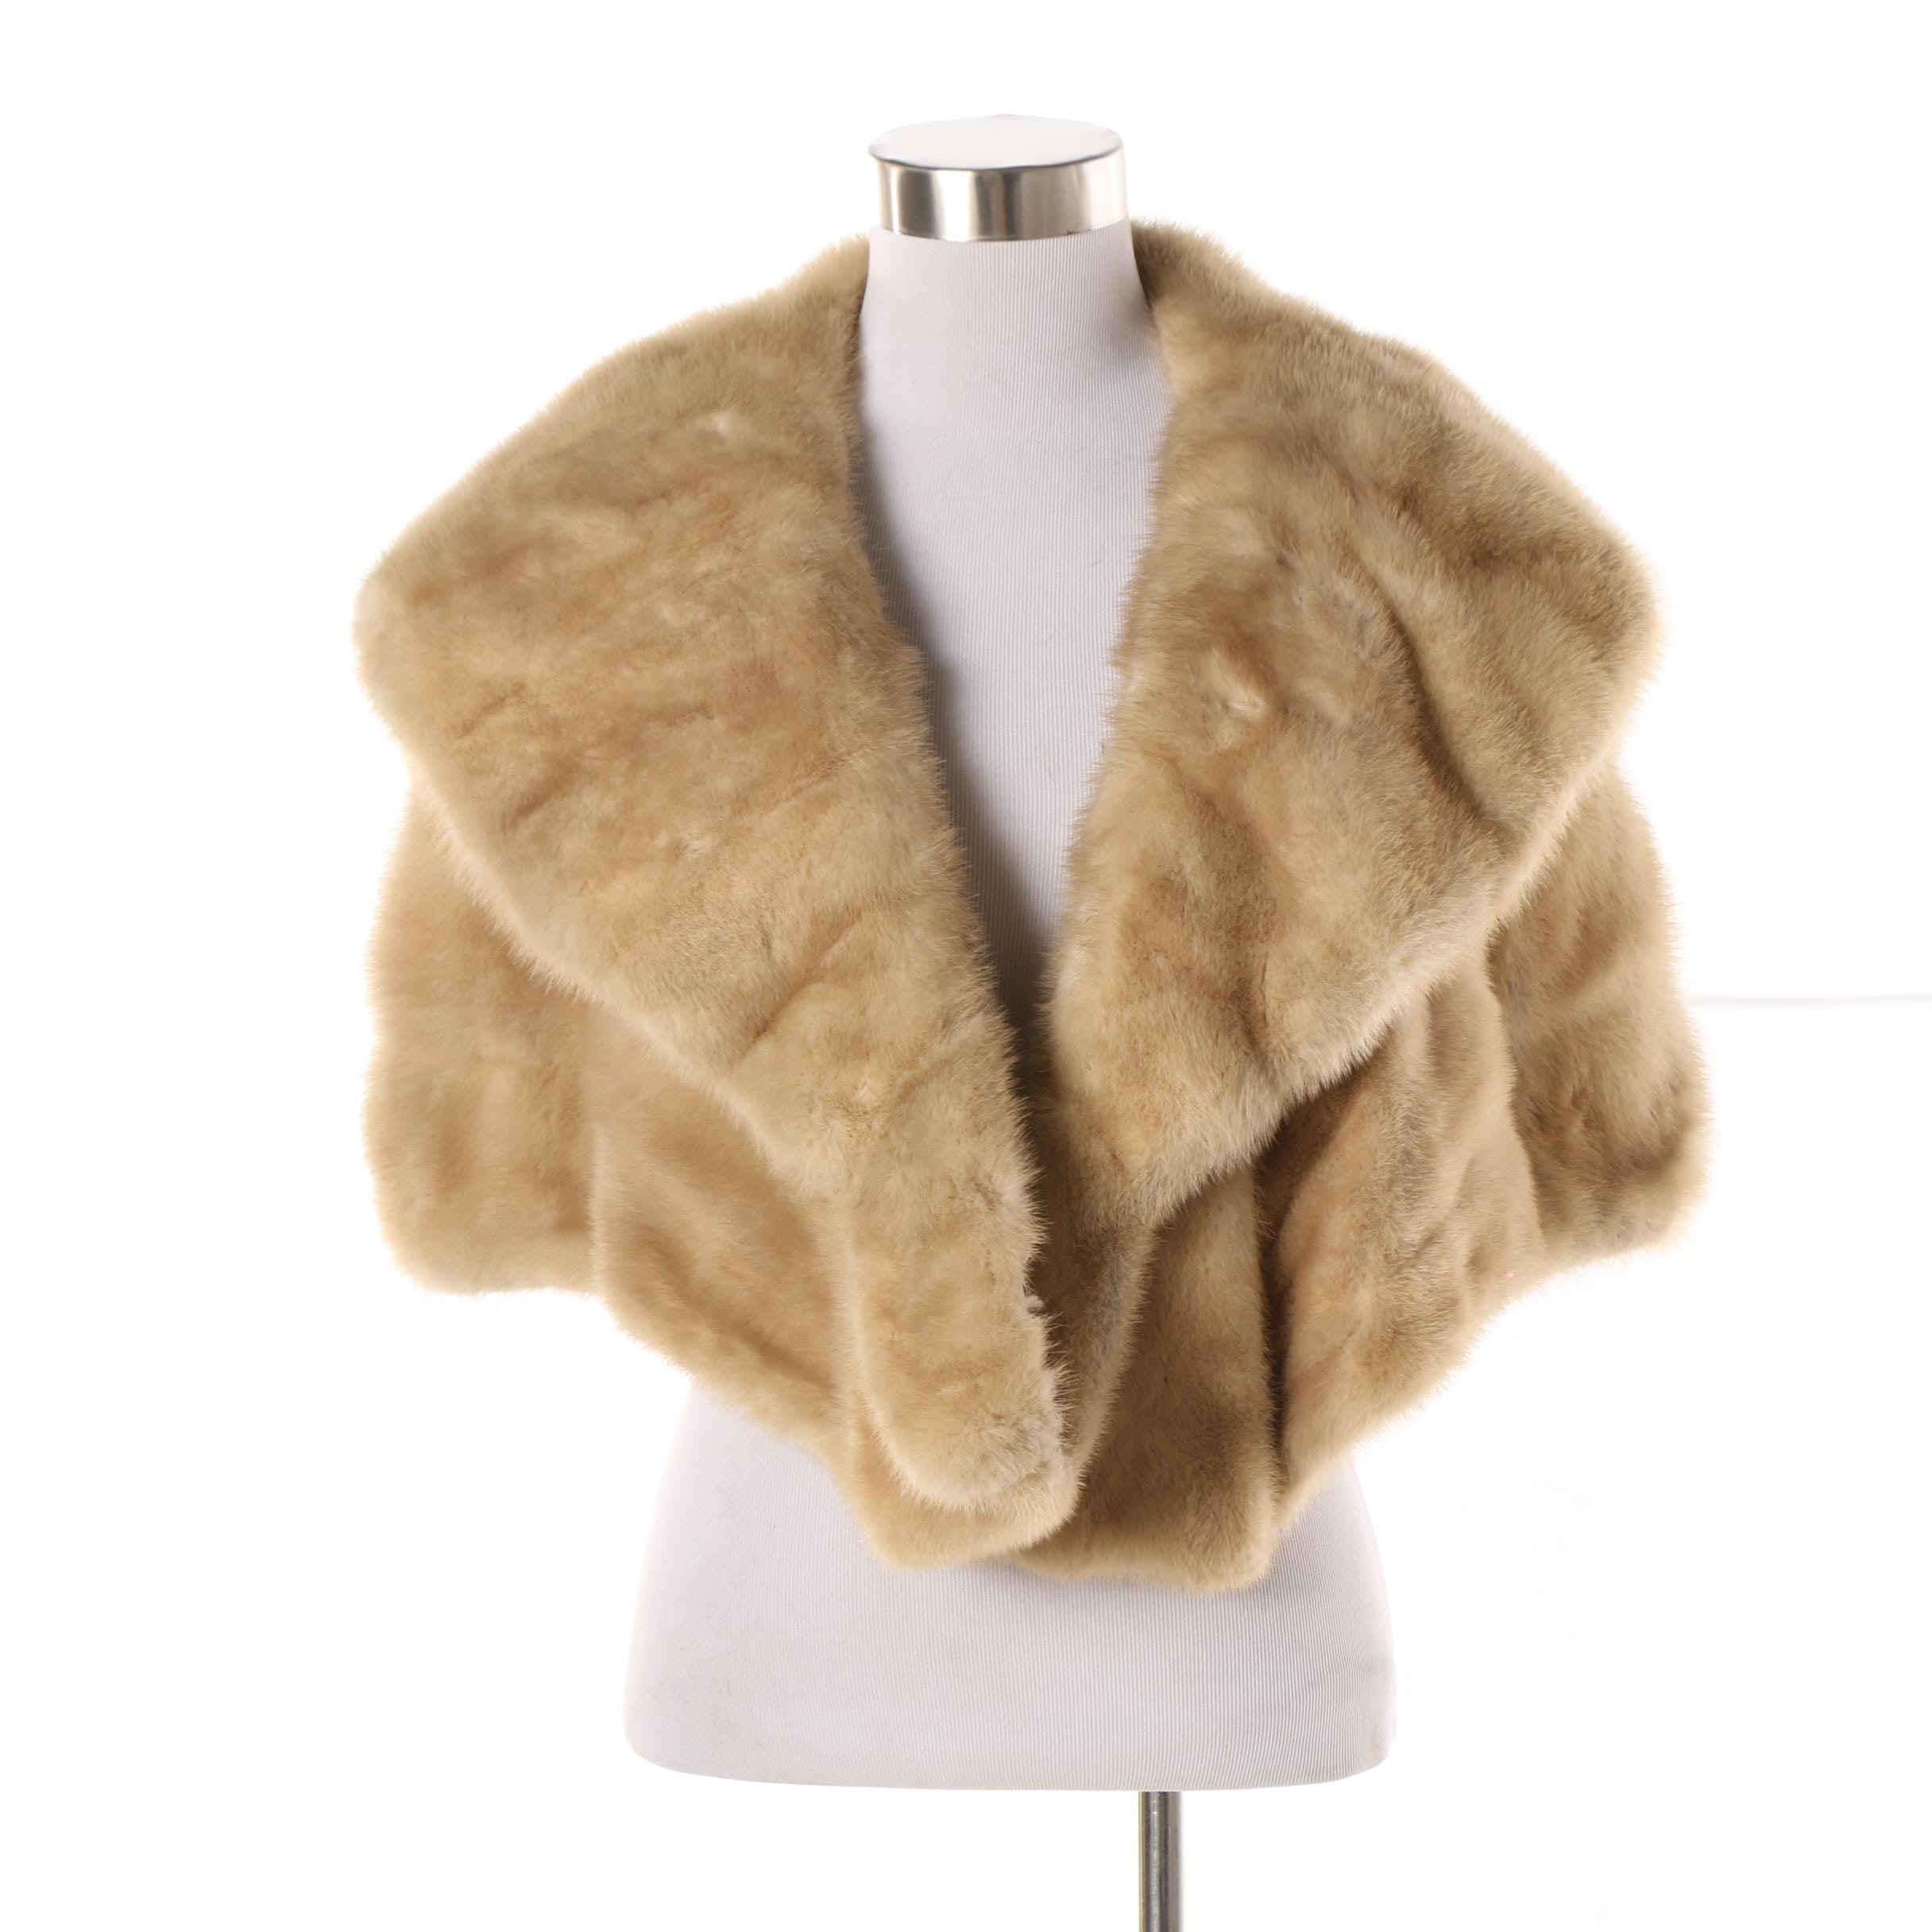 Women's Vintage Kasnow Furs of Chicago Blonde Mink Fur Stole